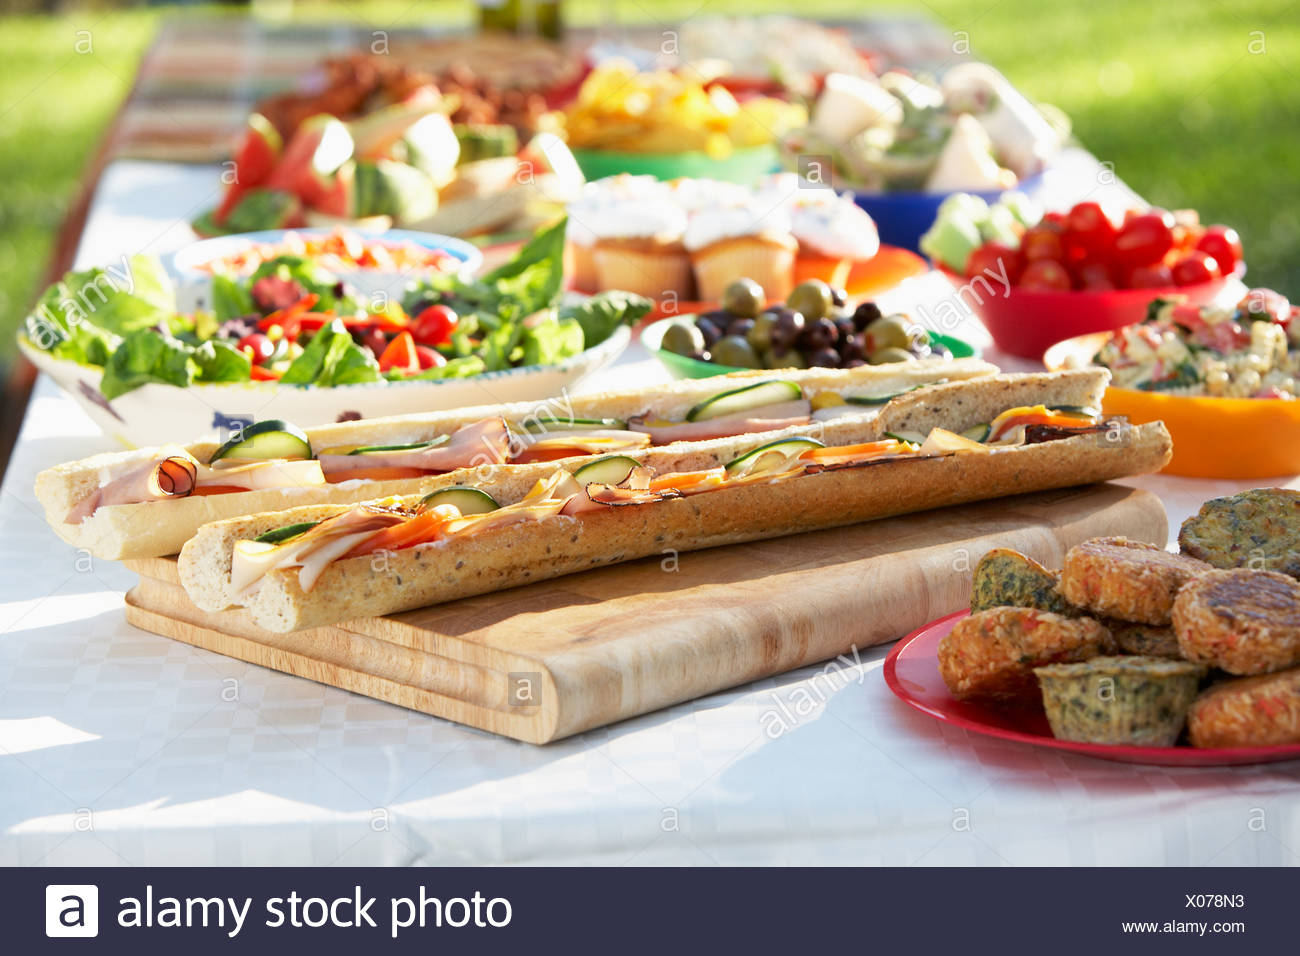 Al Fresco Dining, With Food Laid Out On Table - Stock Image